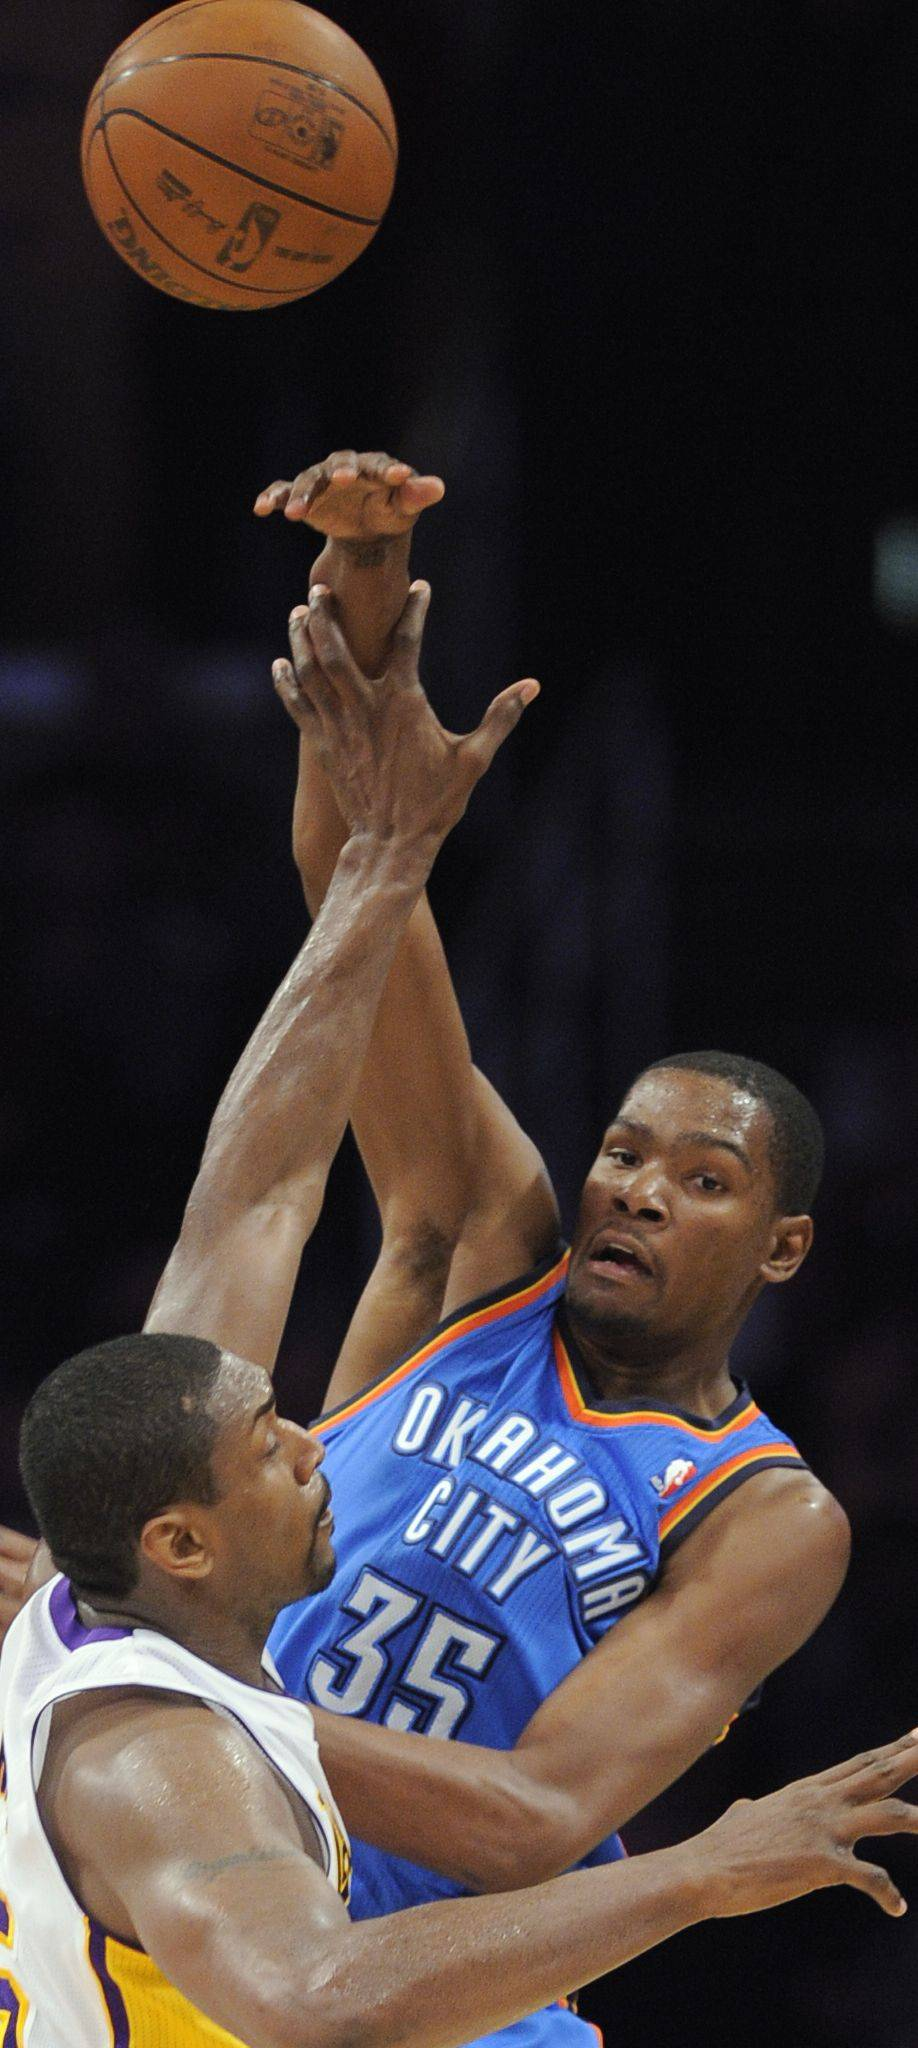 Oklahoma City Thunder forward Kevin Durant, top, passes over Los Angeles Lakers forward Ron Artest in an April game in Los Angeles. The Thunder won 120-106.